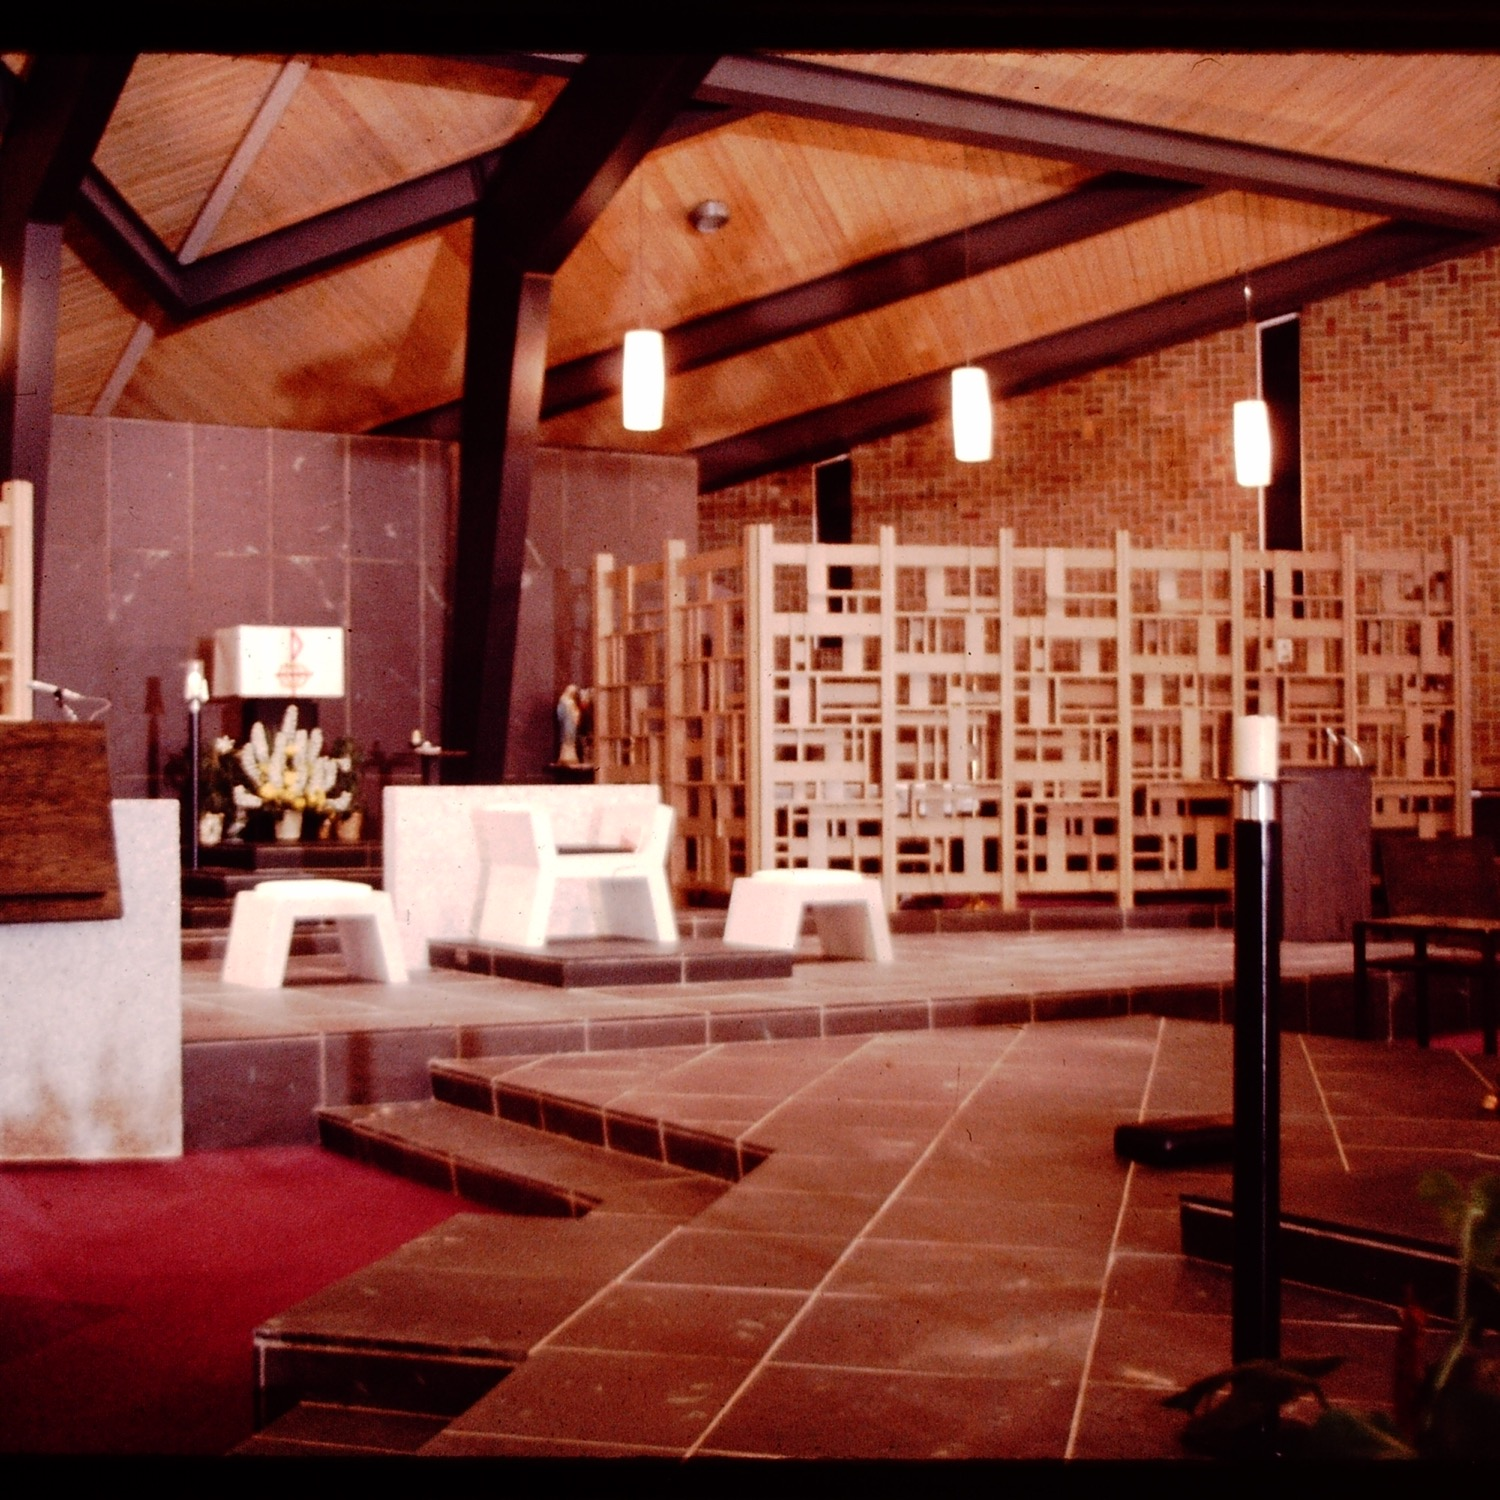 Holy Trinity Roman Catholic Church, interior view showing structural steel arches, interior brick wall,pendant lamps and alter furniture designed by Firant. Original wood screens are now gone. Slide taken at time of construction from Firant Family archives.